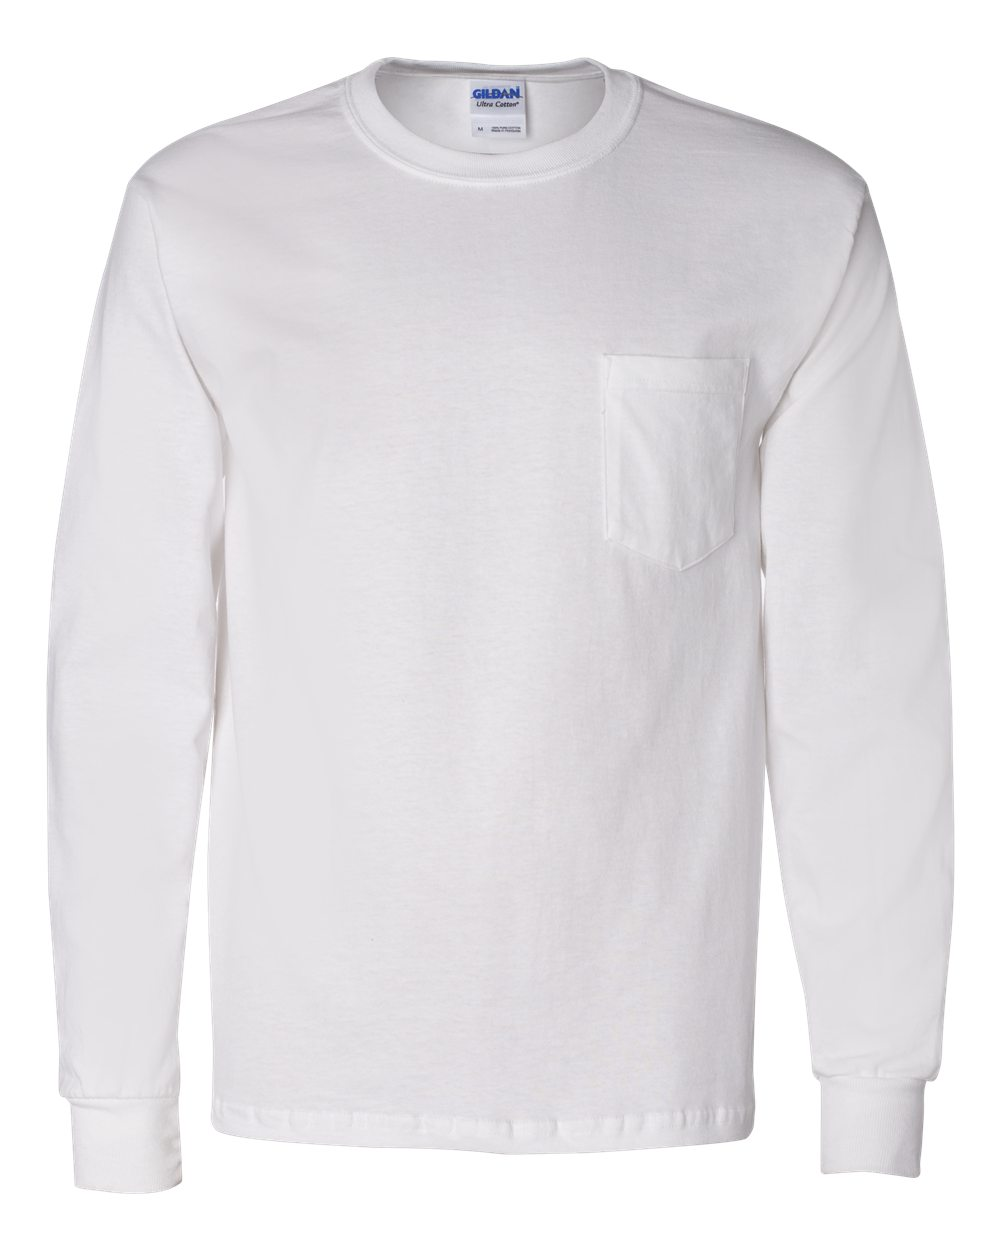 UltraPress | Custom Gildan Ultra Cotton Long Sleeve T-Shirt with a ...